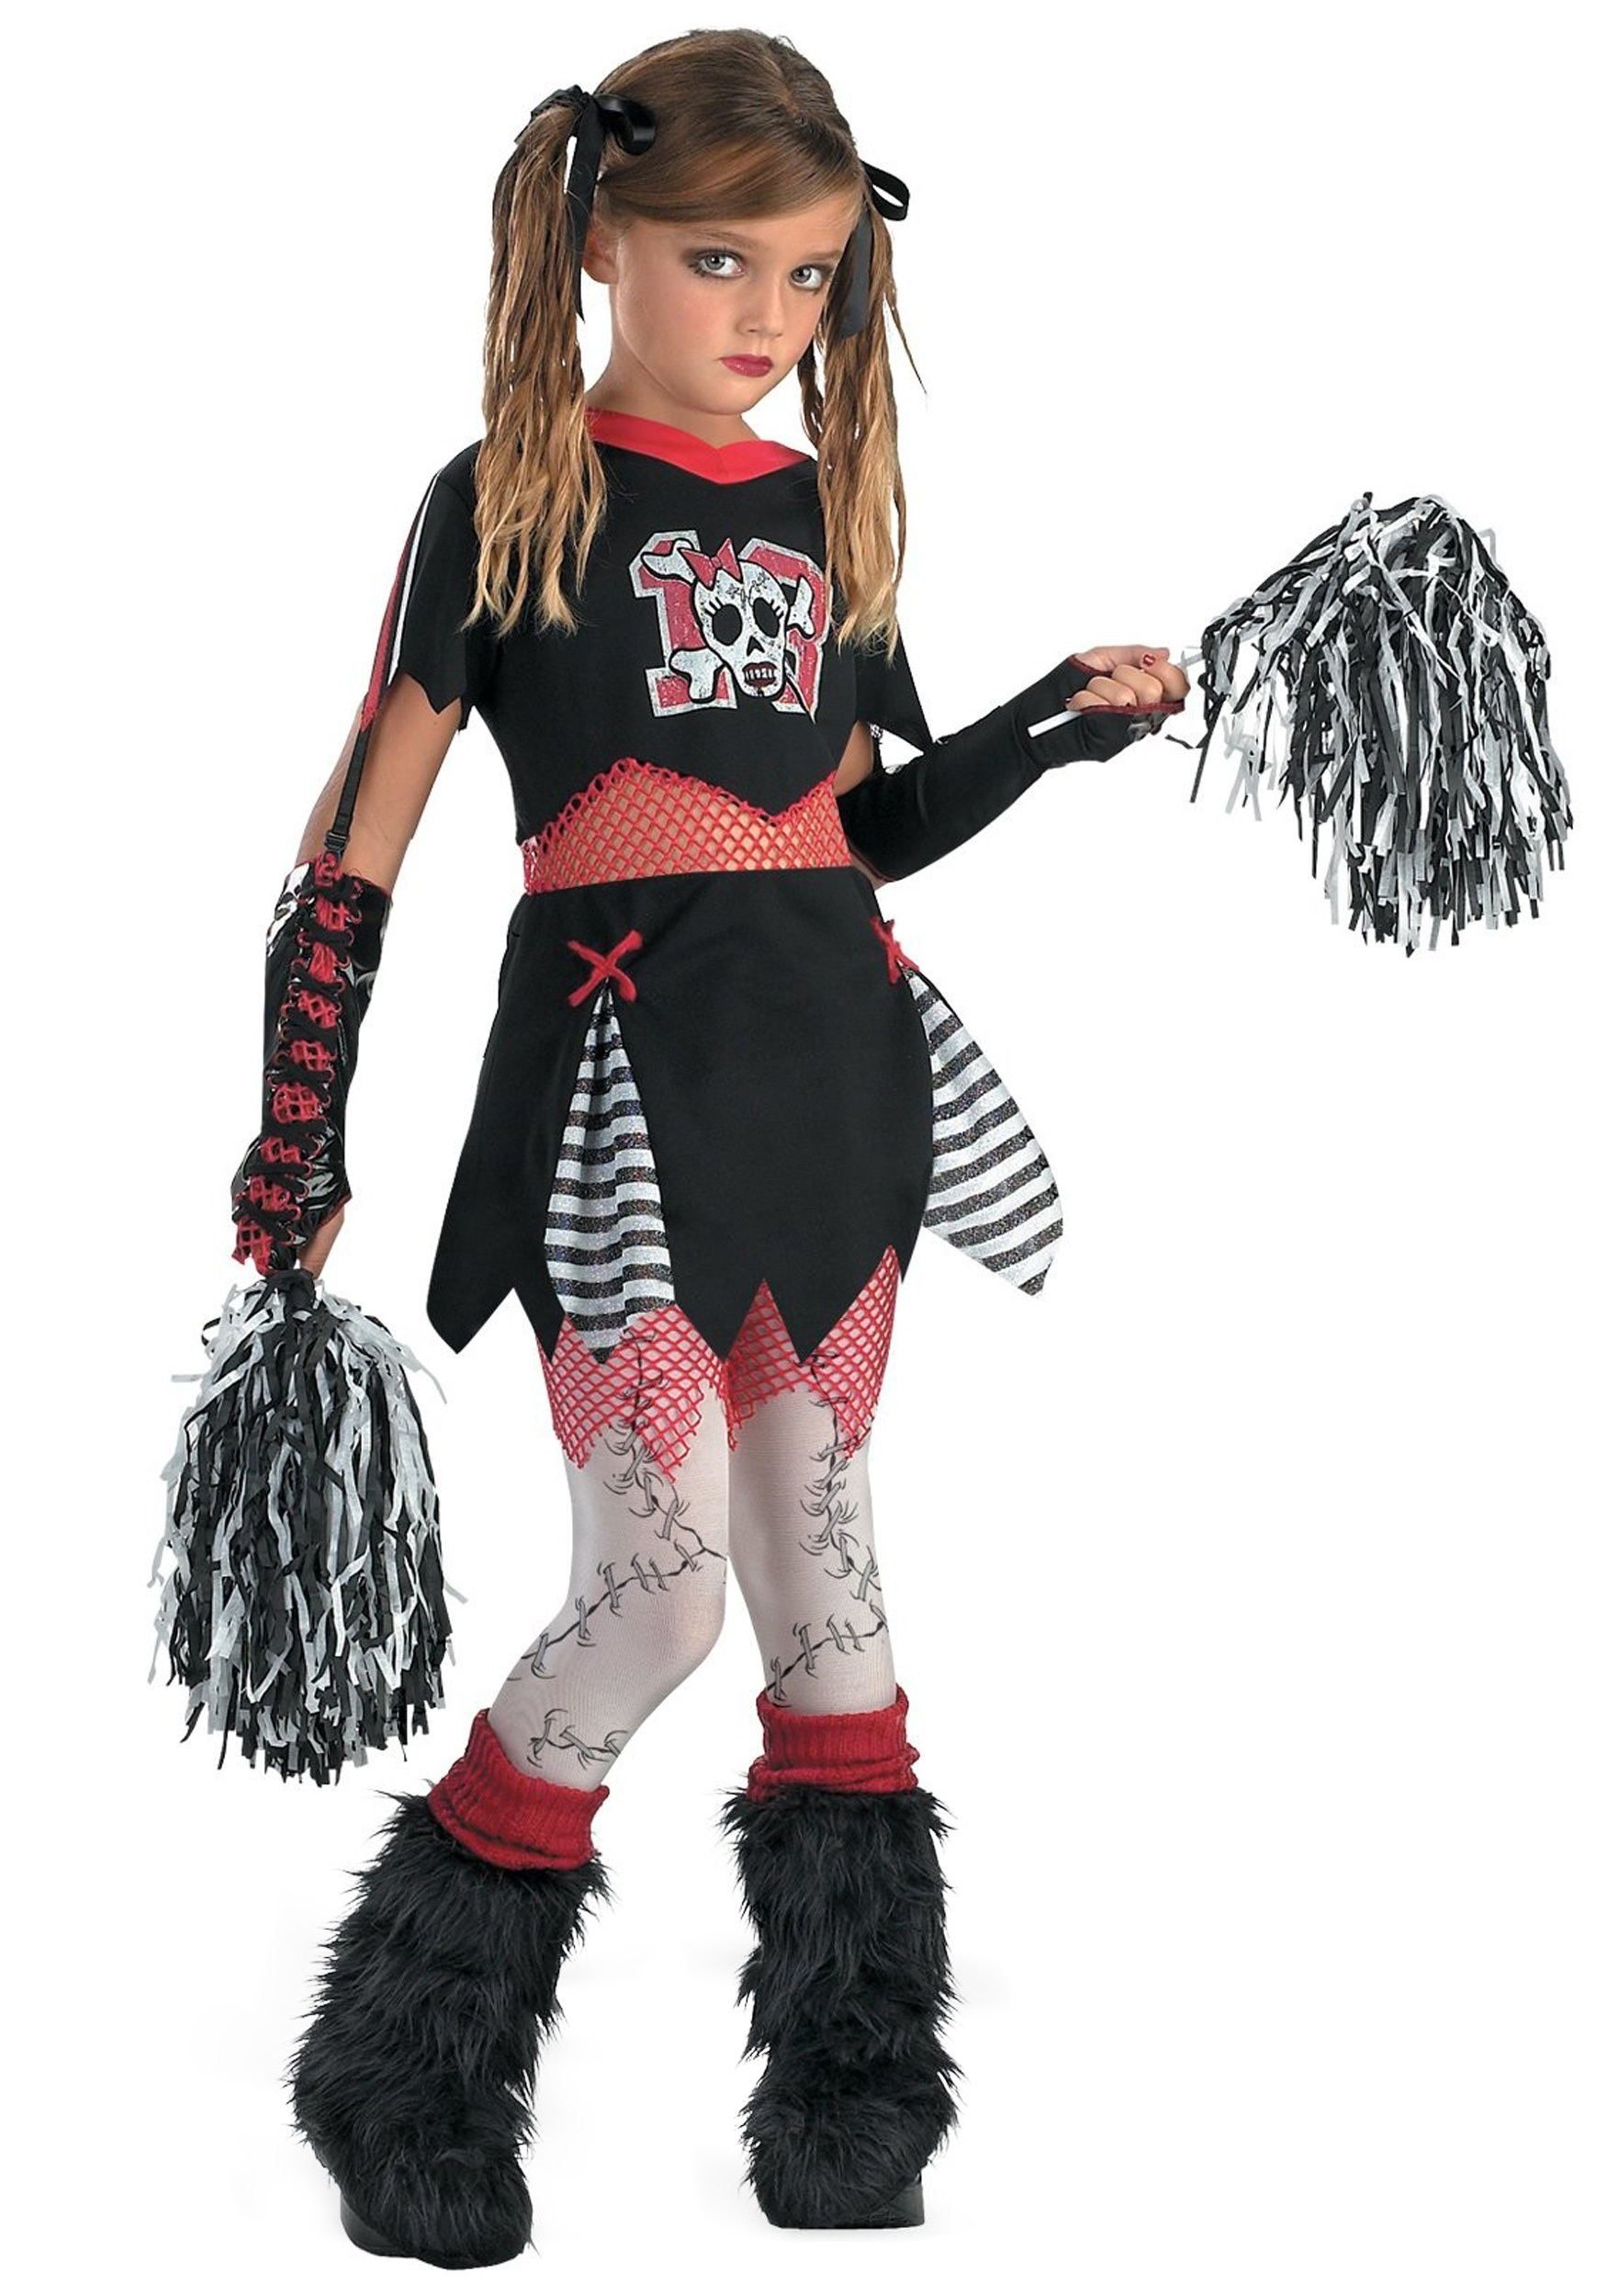 Child Gothic Cheerleader Costume  sc 1 st  Halloween Costume & Child Gothic Cheerleader Costume - Girls Scary Halloween Costumes